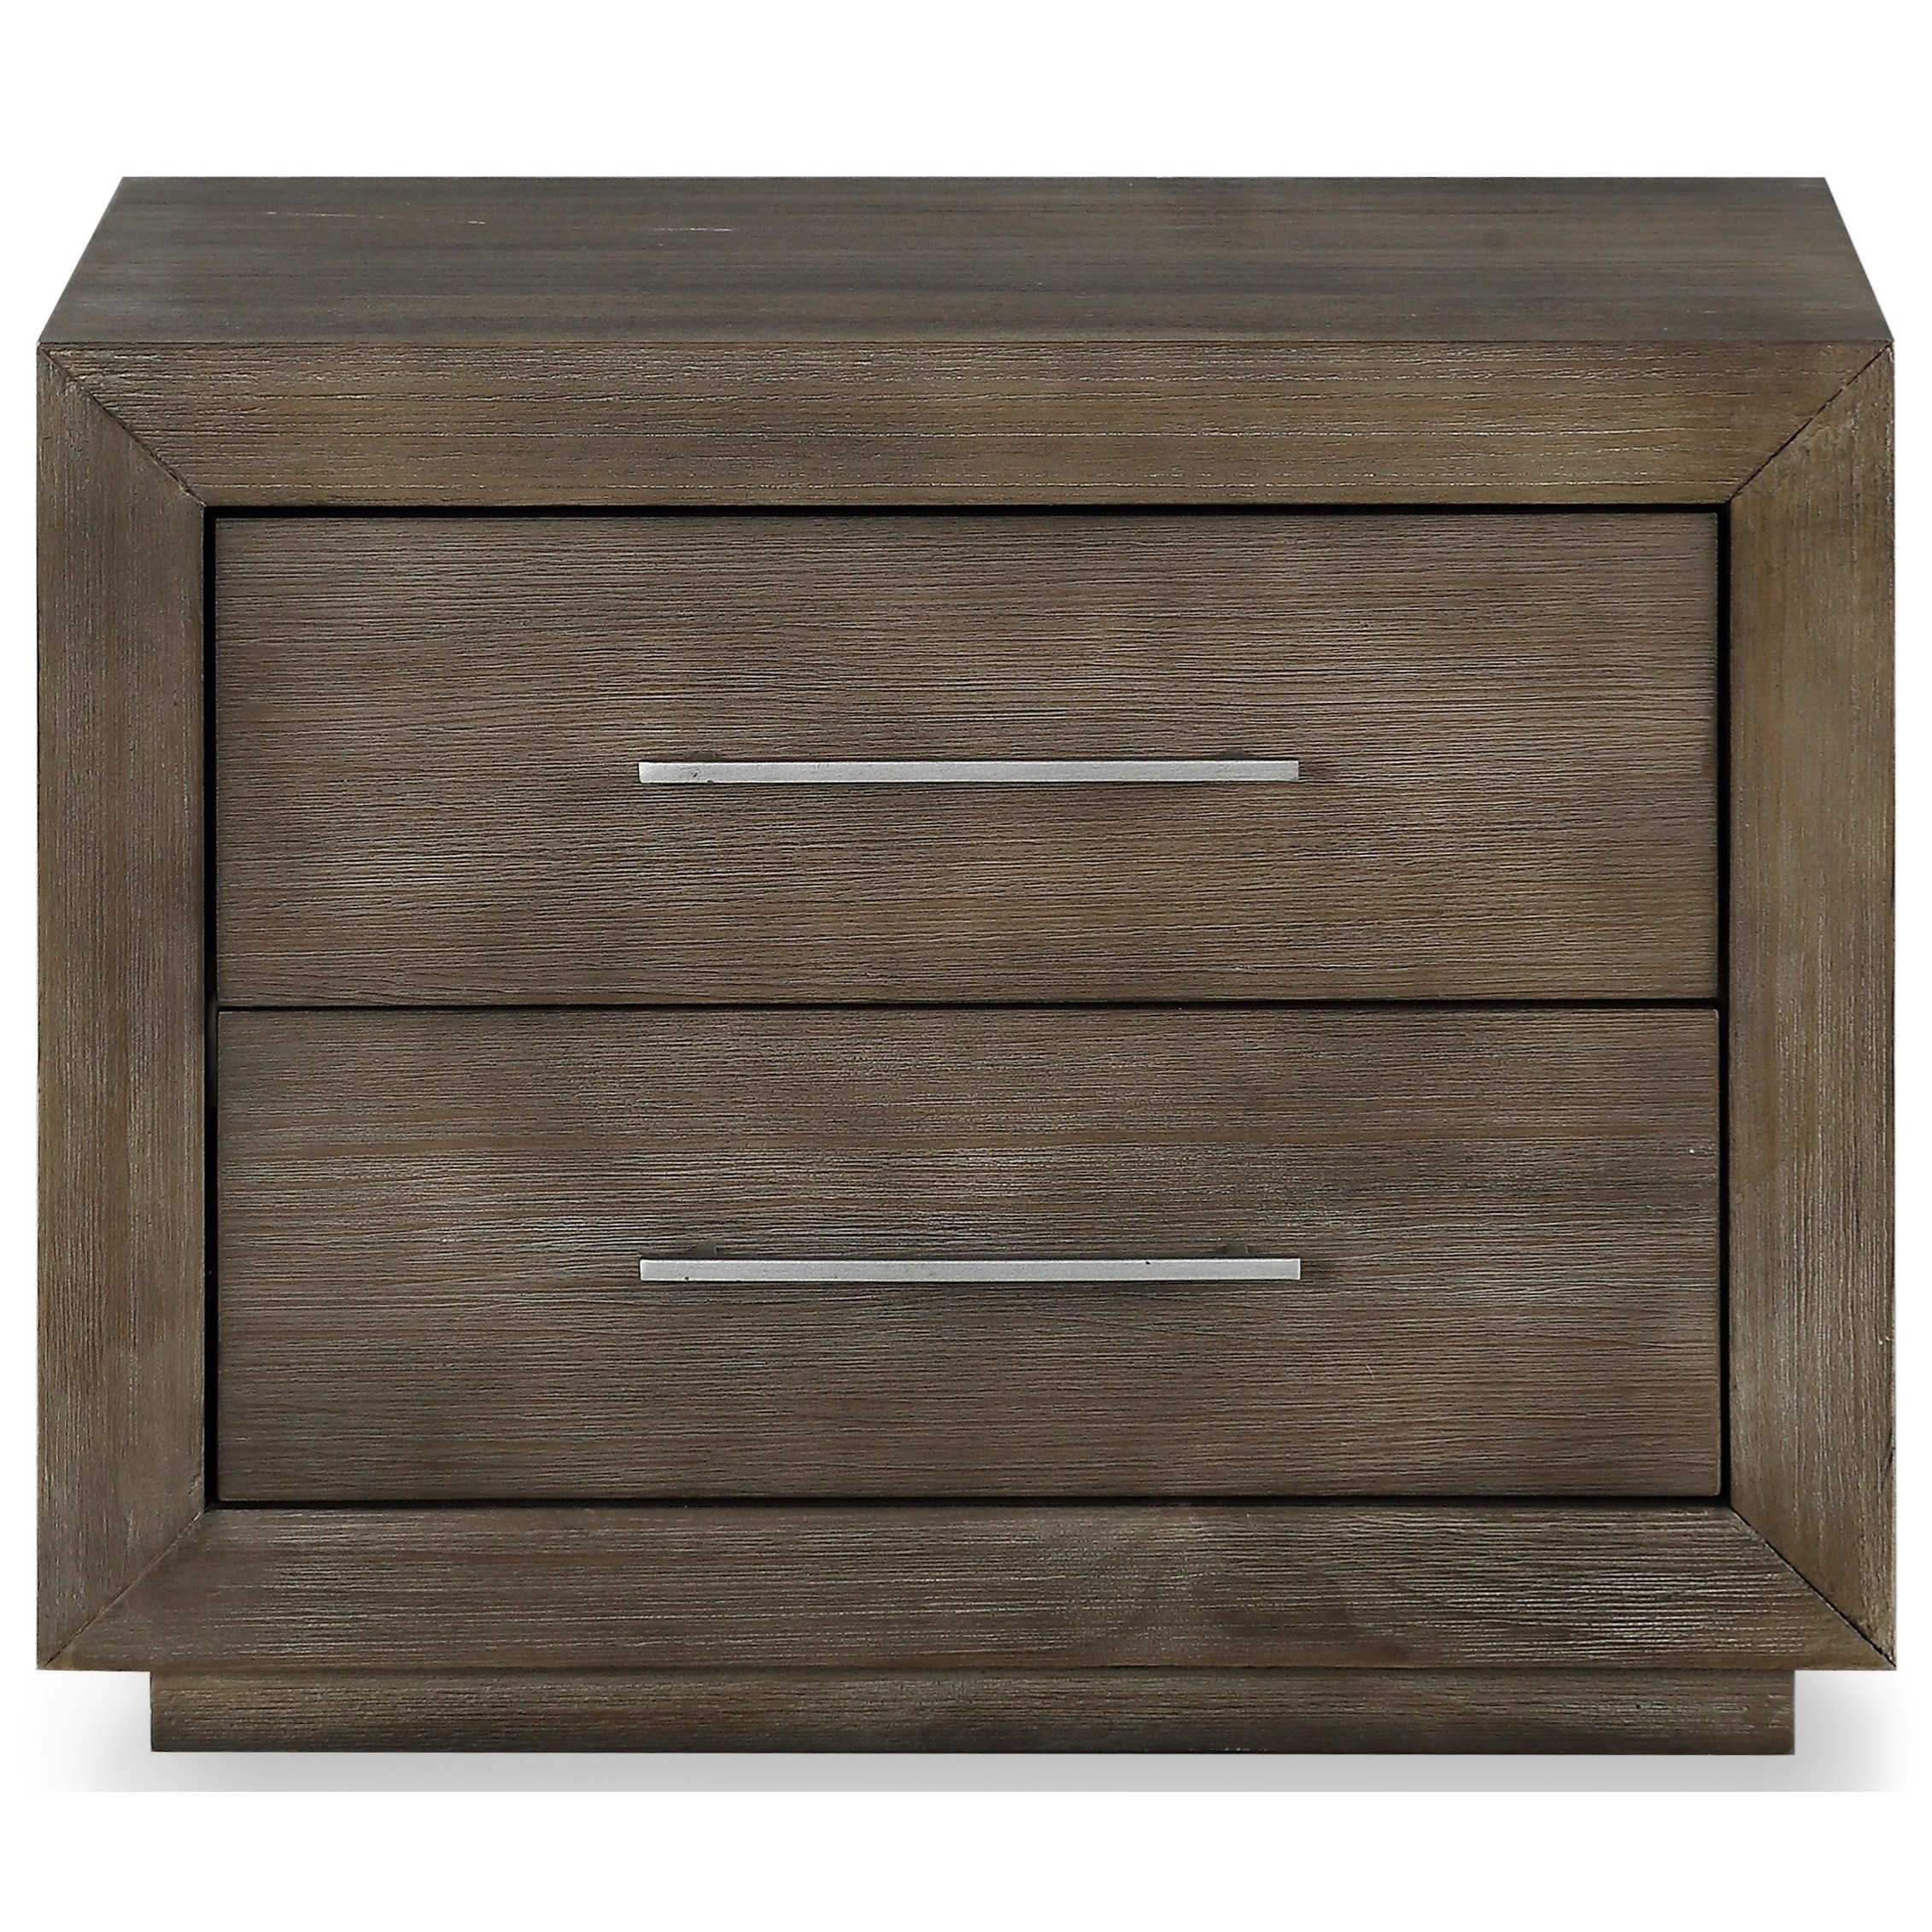 Victoria Victoria Nightstand  by Modus International at Morris Home